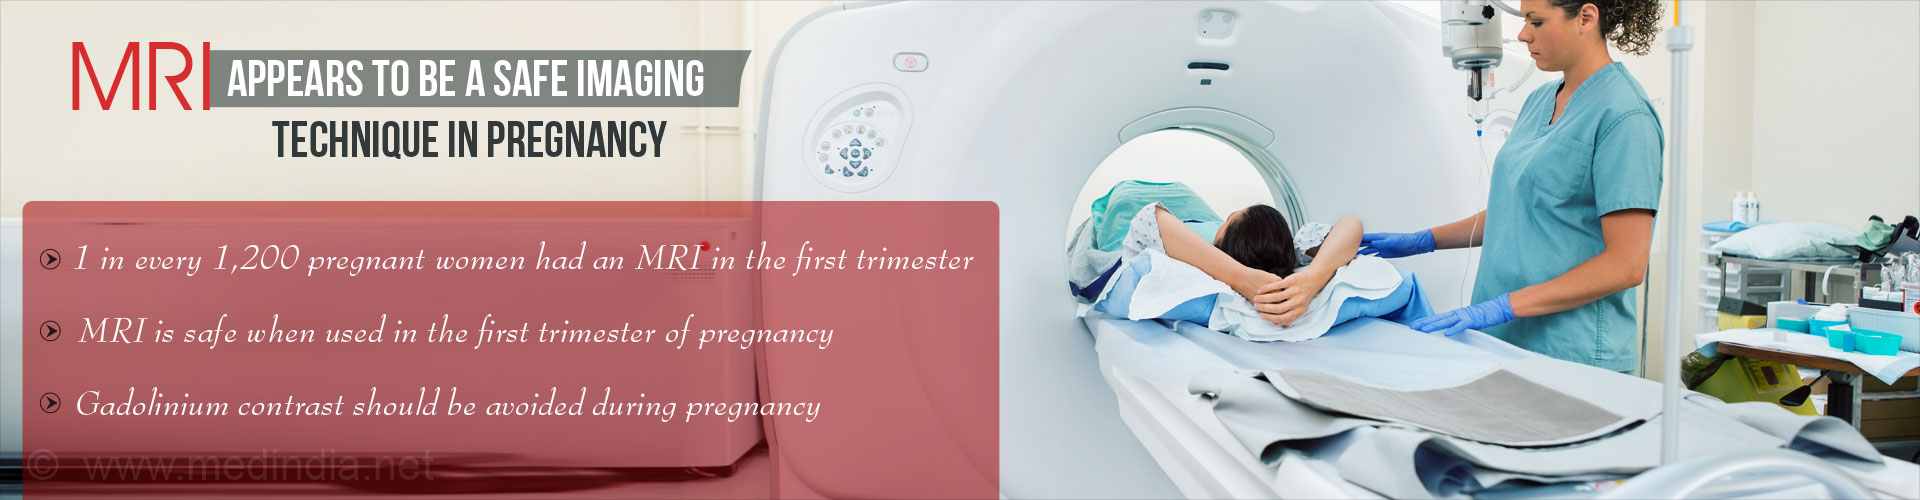 Magnetic Resonance Imaging (MRI) May Not Pose a Risk in the First Trimester of Pregnancy